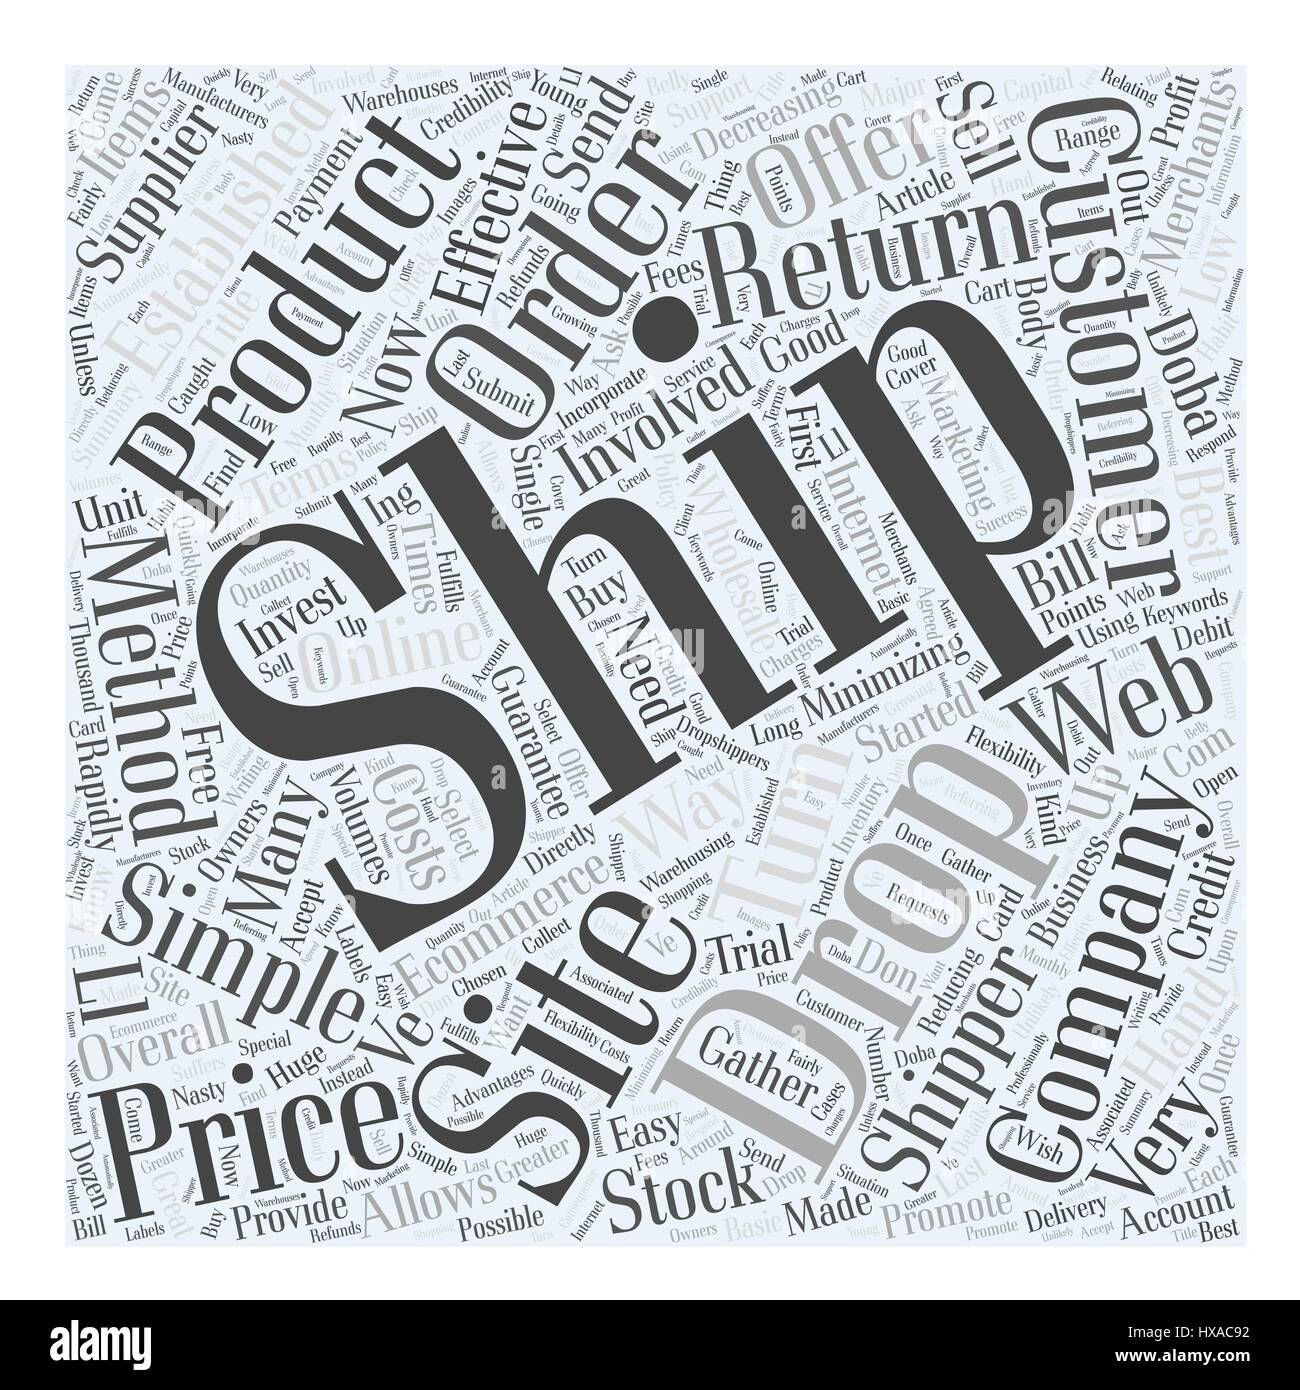 Drop Shipping Made Easy Word Cloud Concept - Stock Vector